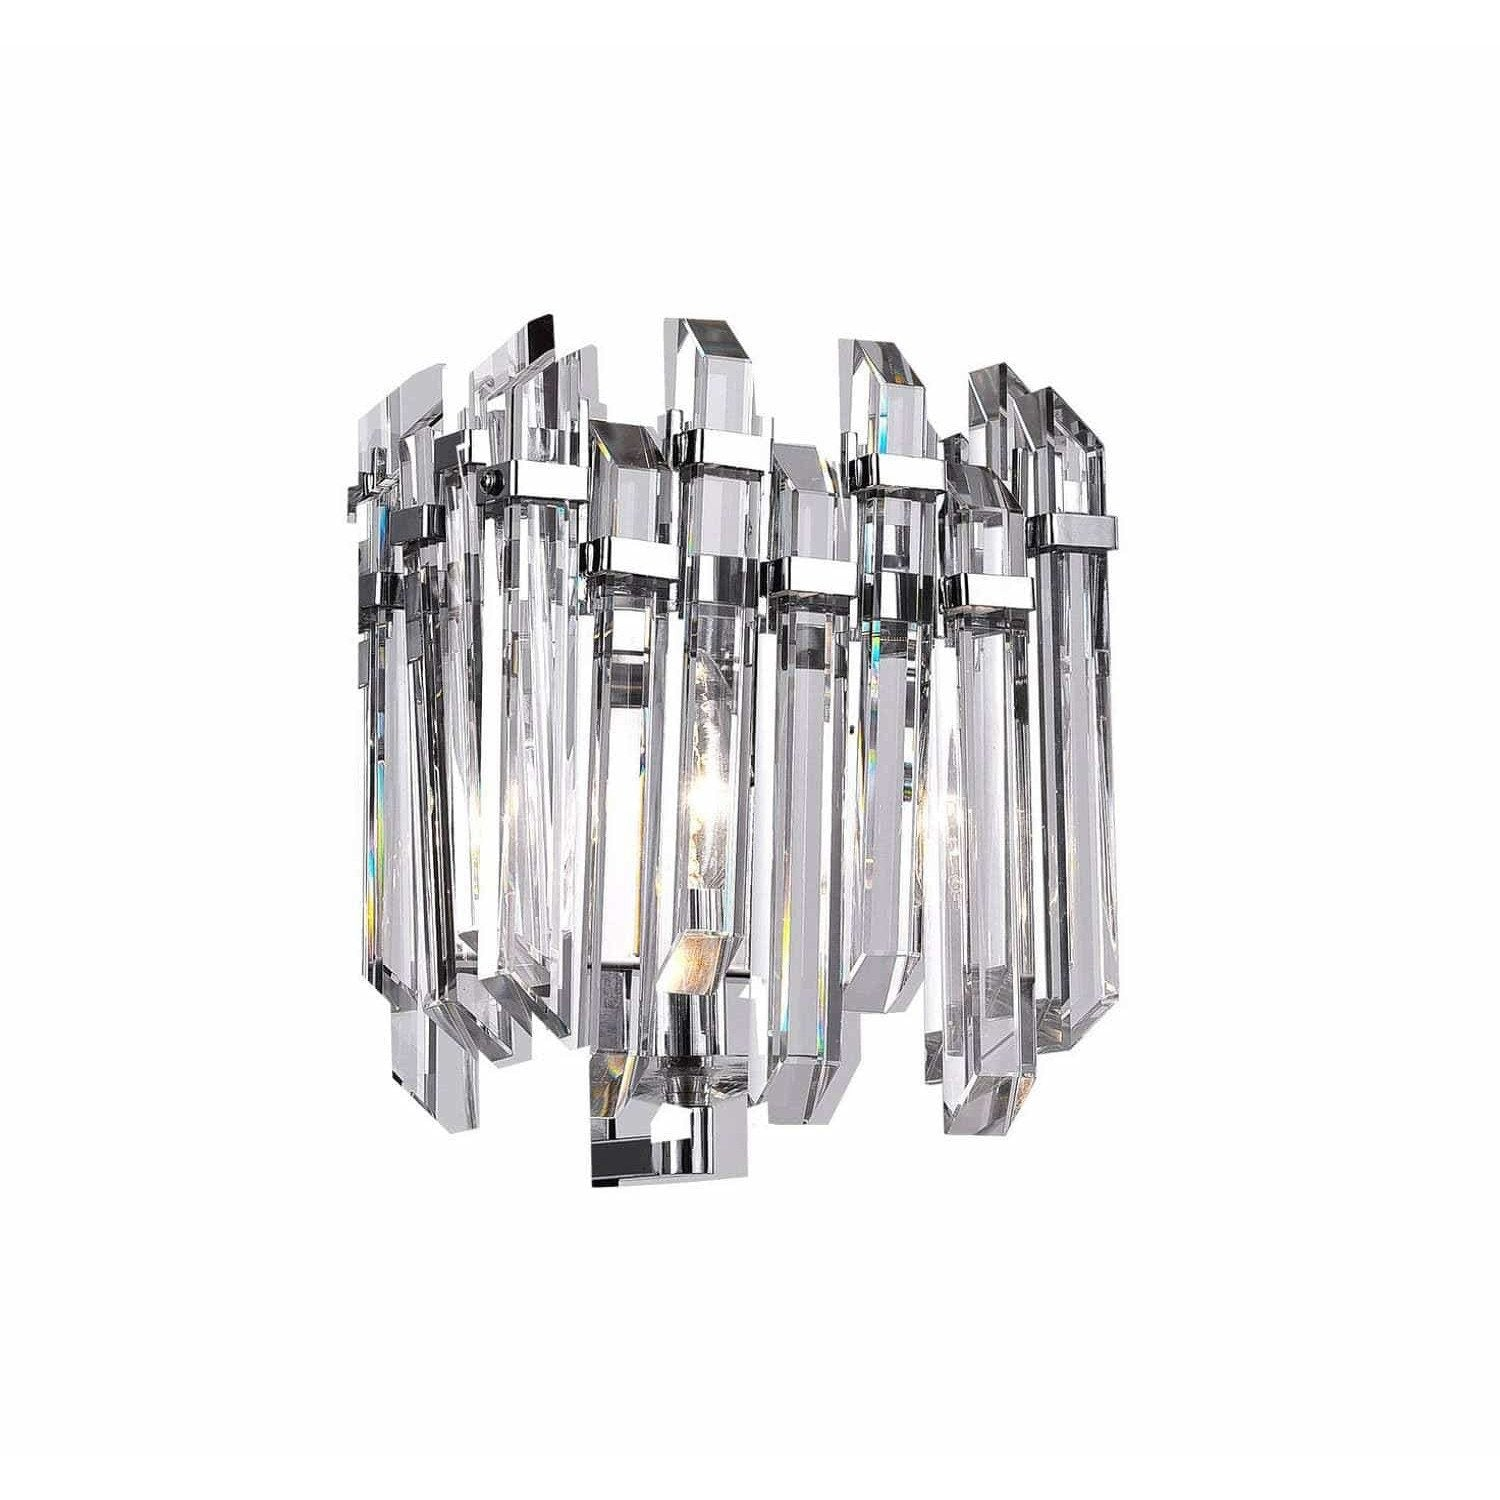 CWI Lighting Wall Sconces Chrome / K9 Clear Henrietta 1 Light Wall Sconce with Chrome Finish by CWI Lighting 1065W8-1-601